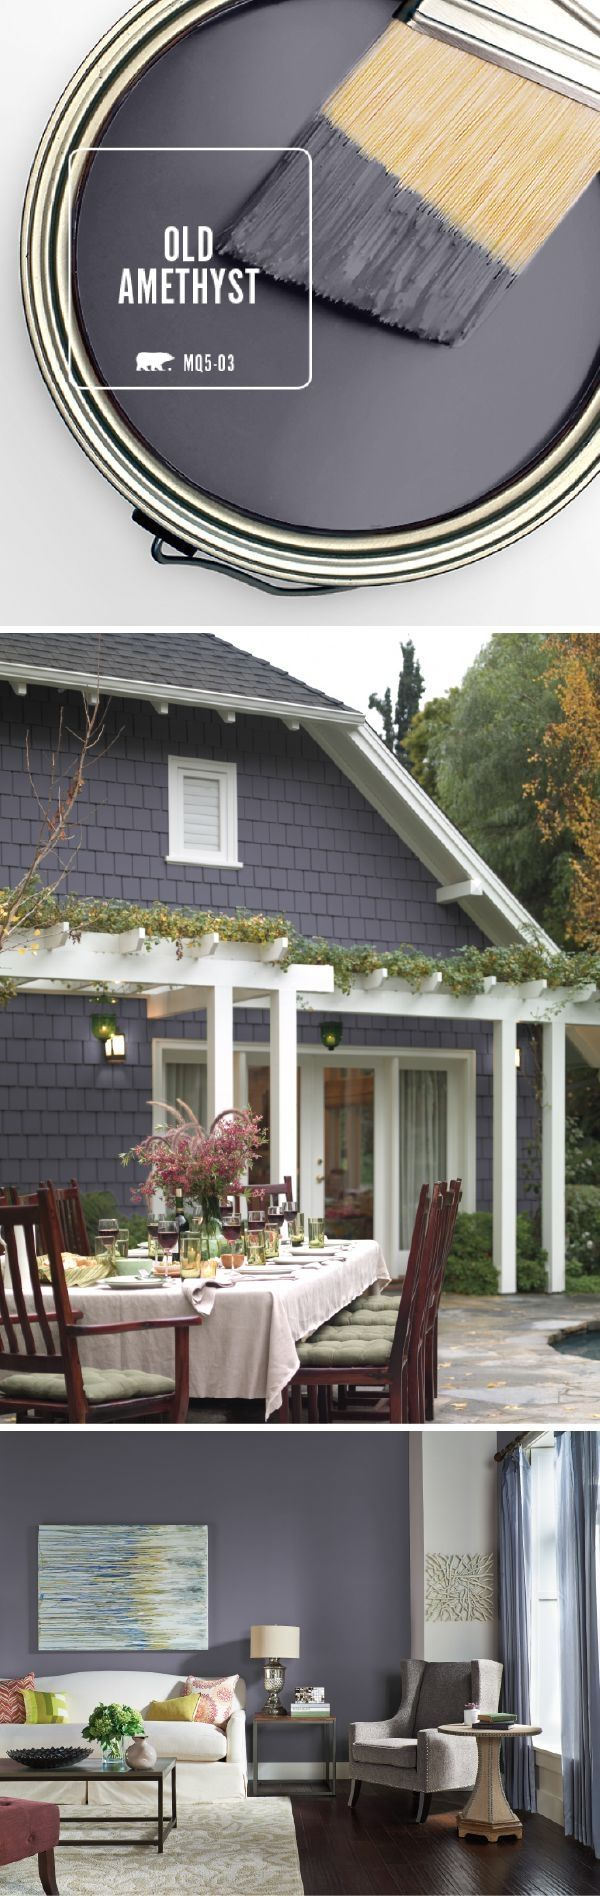 Bring the exterior of your home into the 21st century with BEHR's Color of the Month: Old Amethyst. This modern paint color shines when paired with bright white trim and a natural stone pathway. Use the deep blue and purple undertones in this dark gray hue to enhance the view of your outdoor landscaping. by suzette